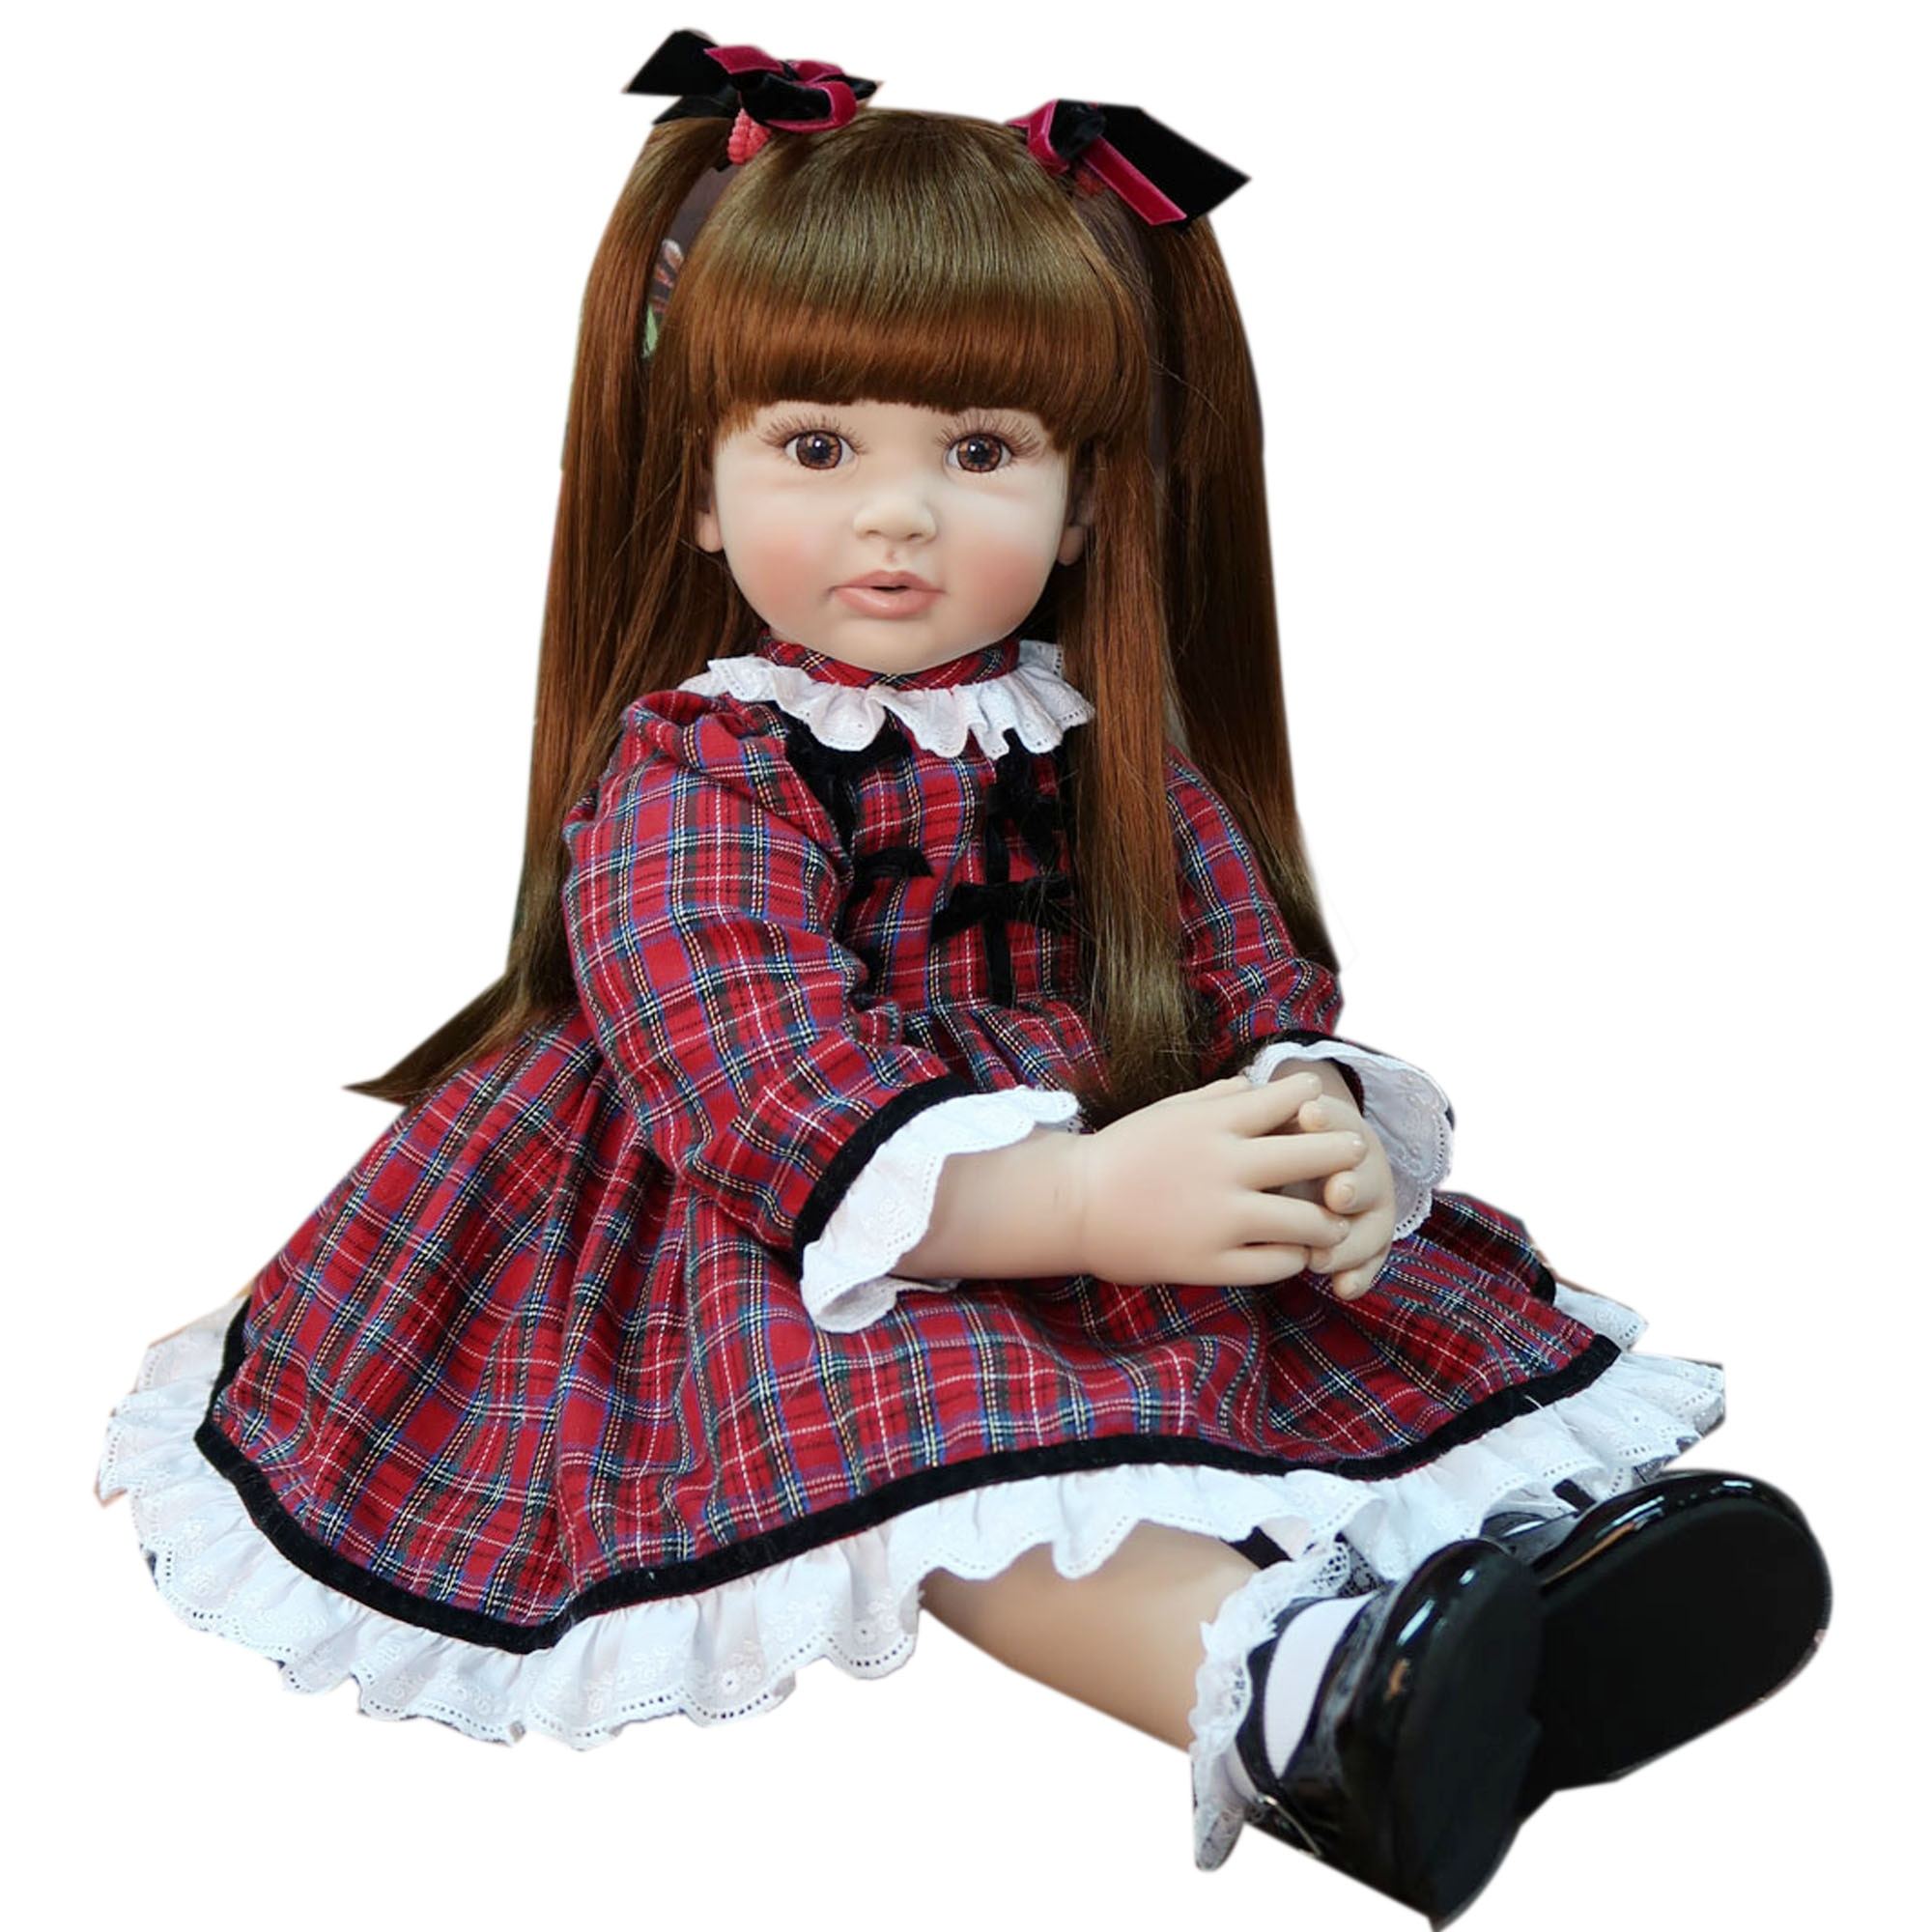 60cm Exclusive style Silicone Reborn Baby Doll Toy Vinyl Princess Toddler Babies Like Alive Bebe Girl Boneca Child Birthday Gift